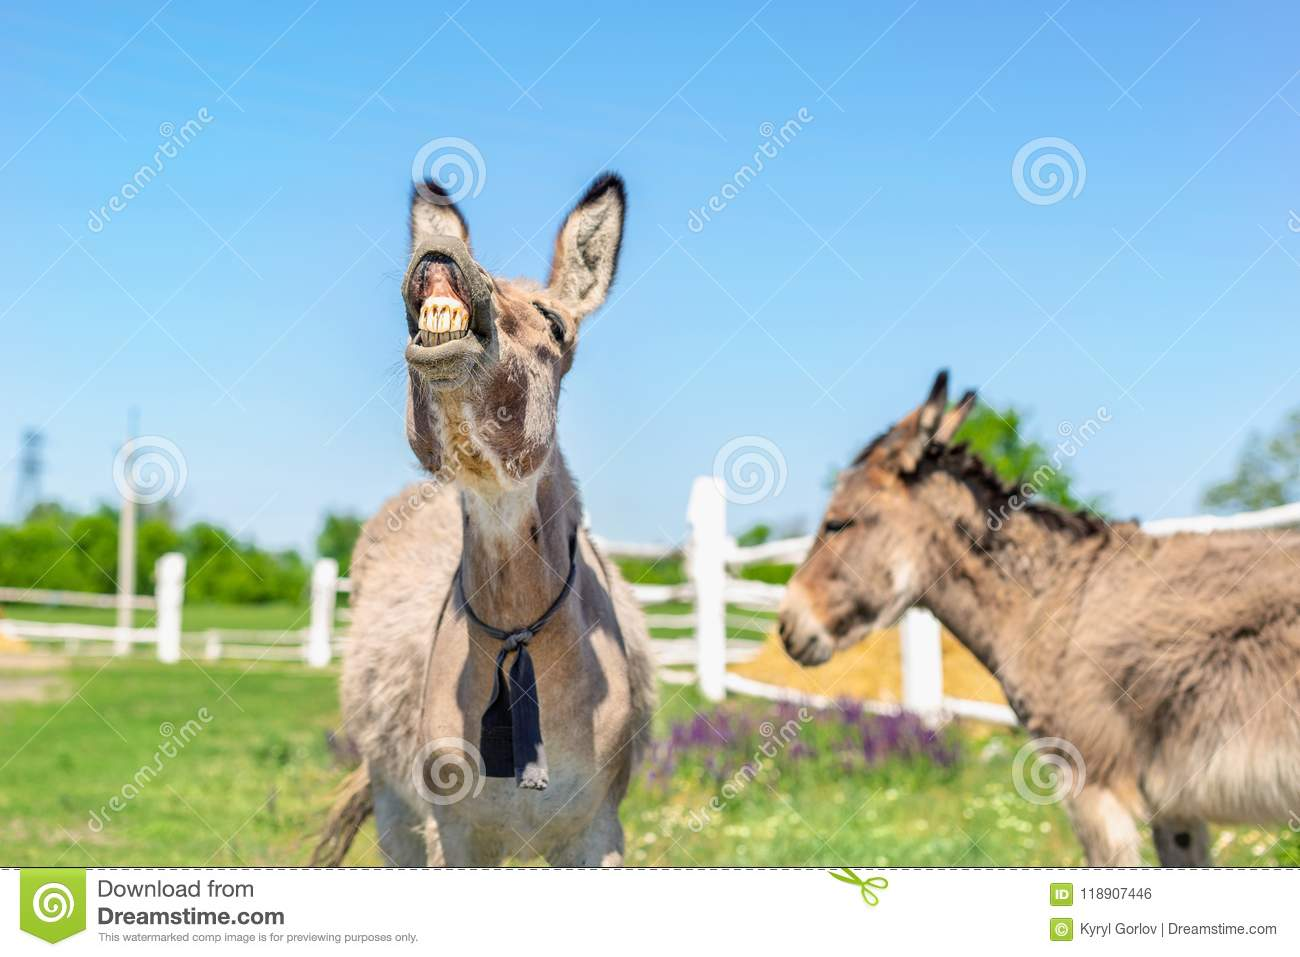 Funny laughing donkey. Portrait of cute livestock animal showing teeth in smile. Couple of grey donkeys on pasture at farm. Humor